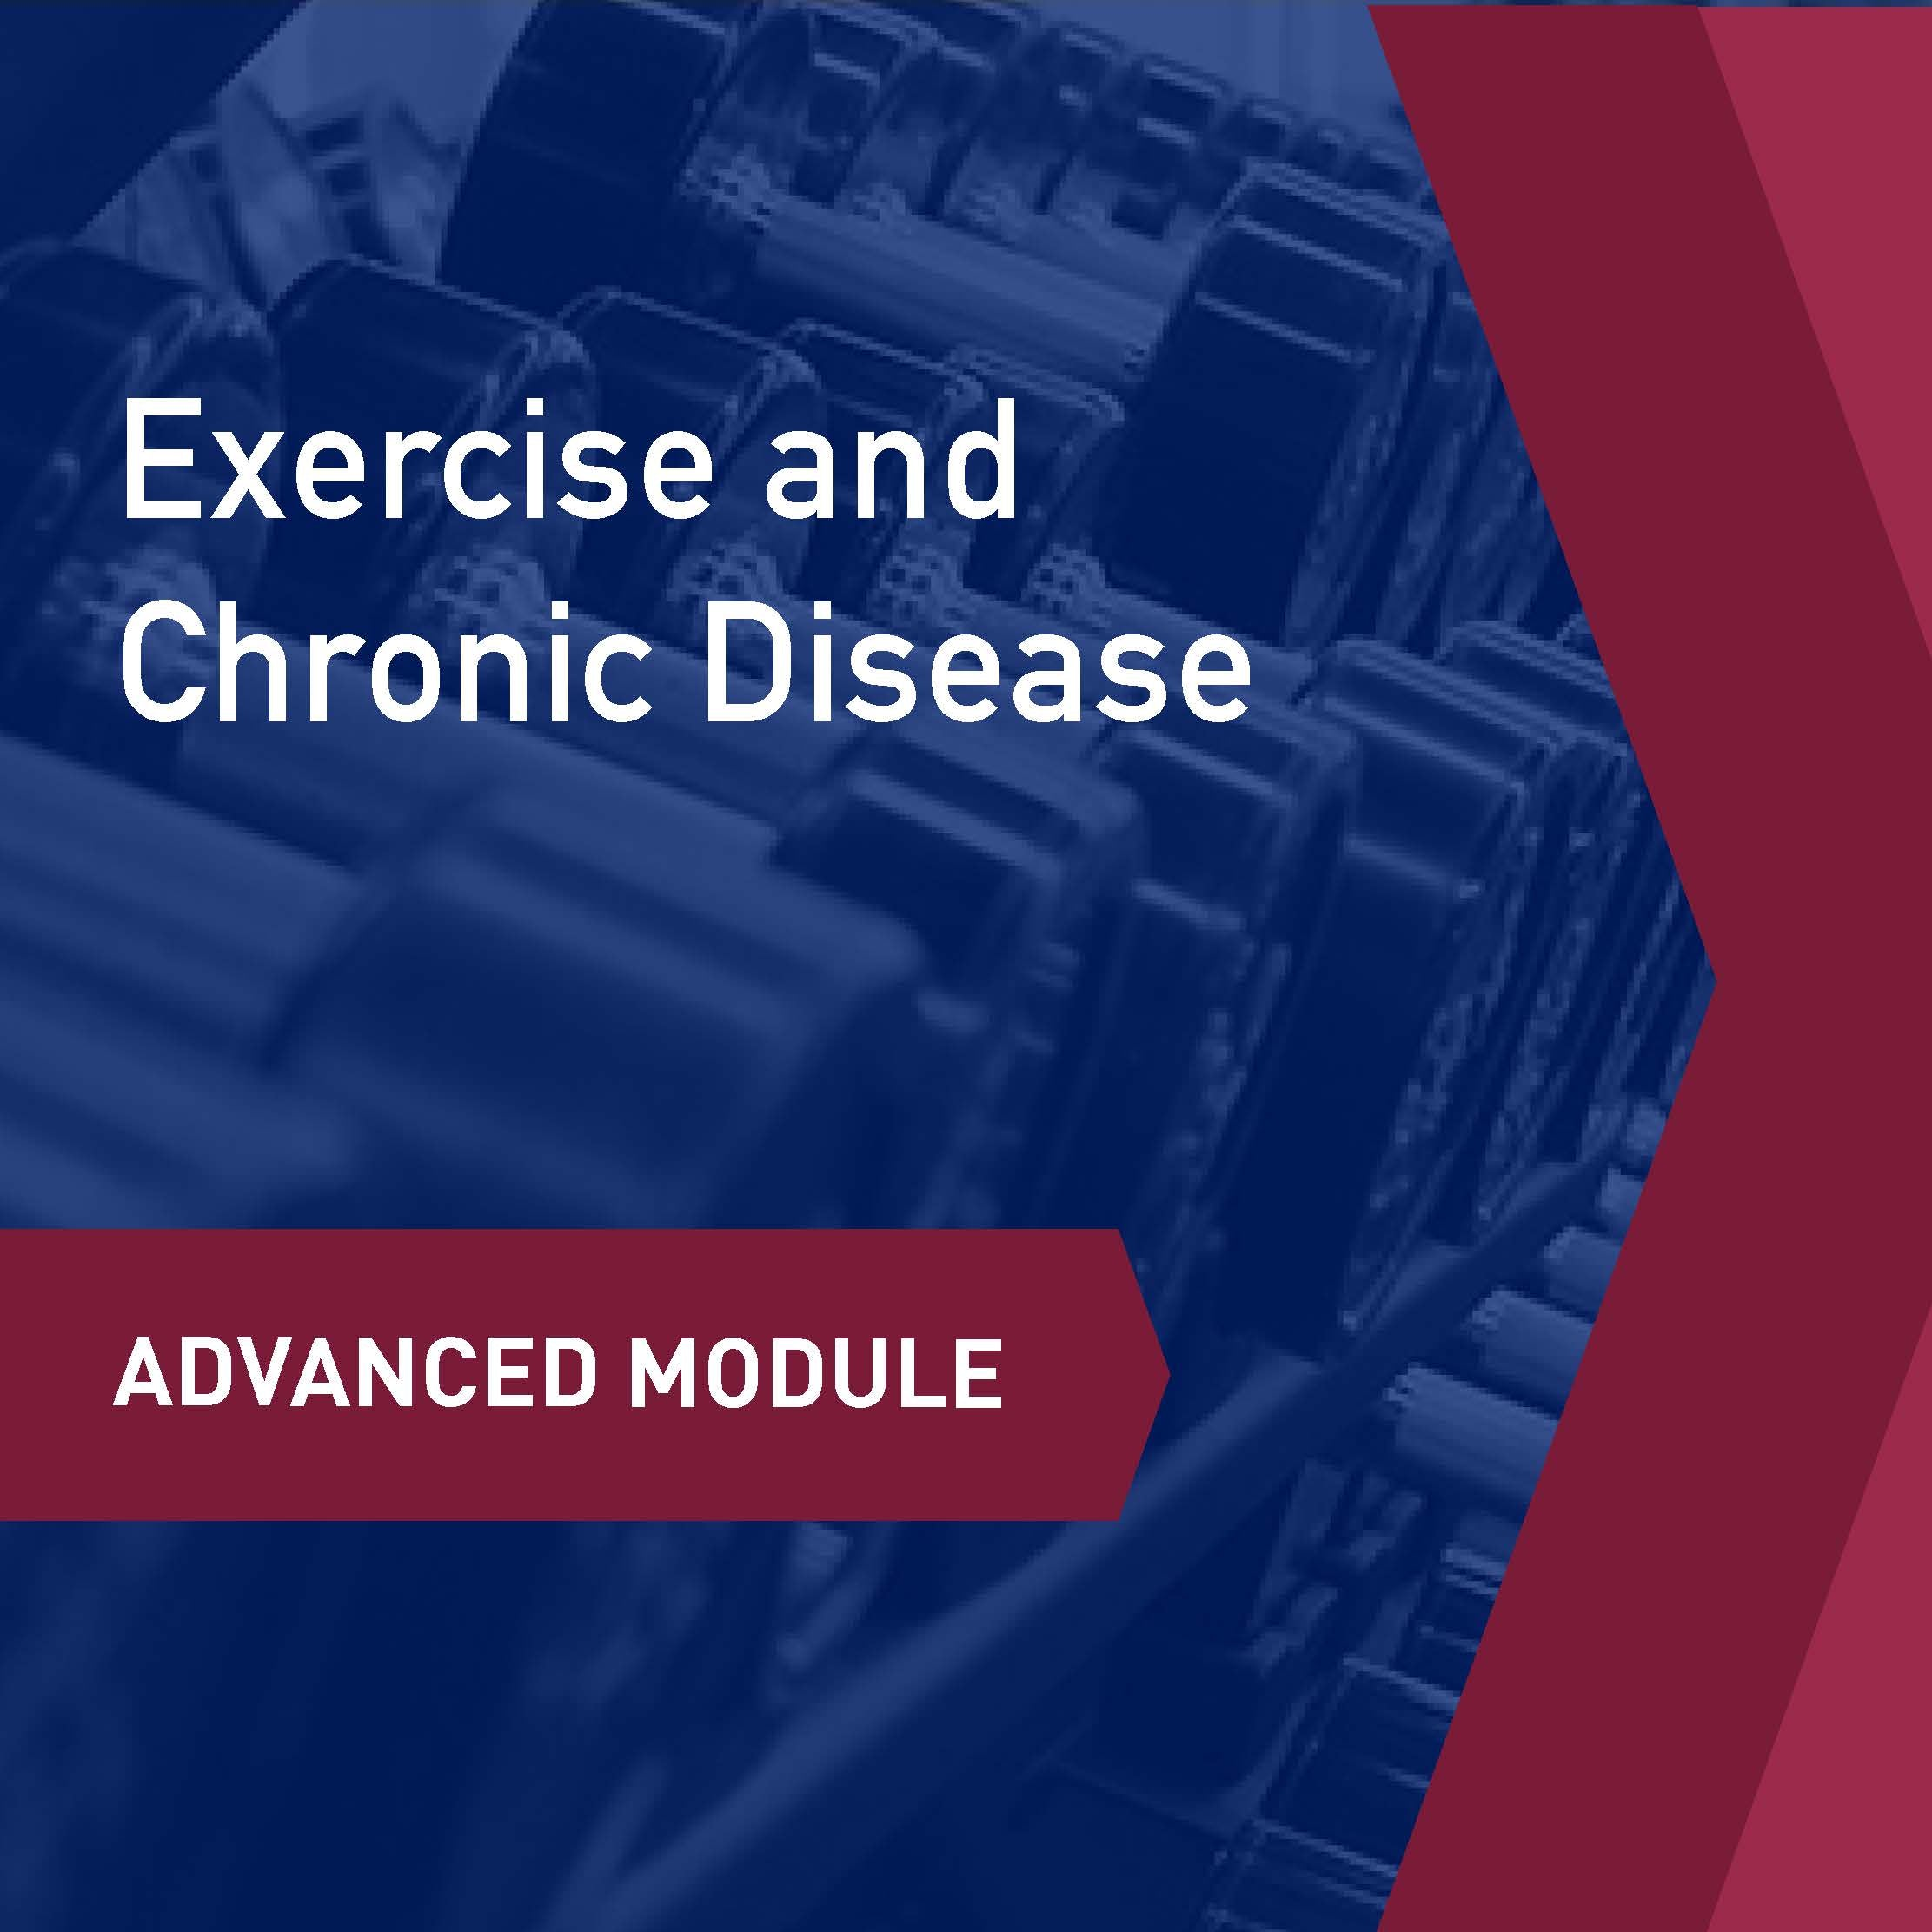 Advanced Learning Module: Exercise and Chronic Disease